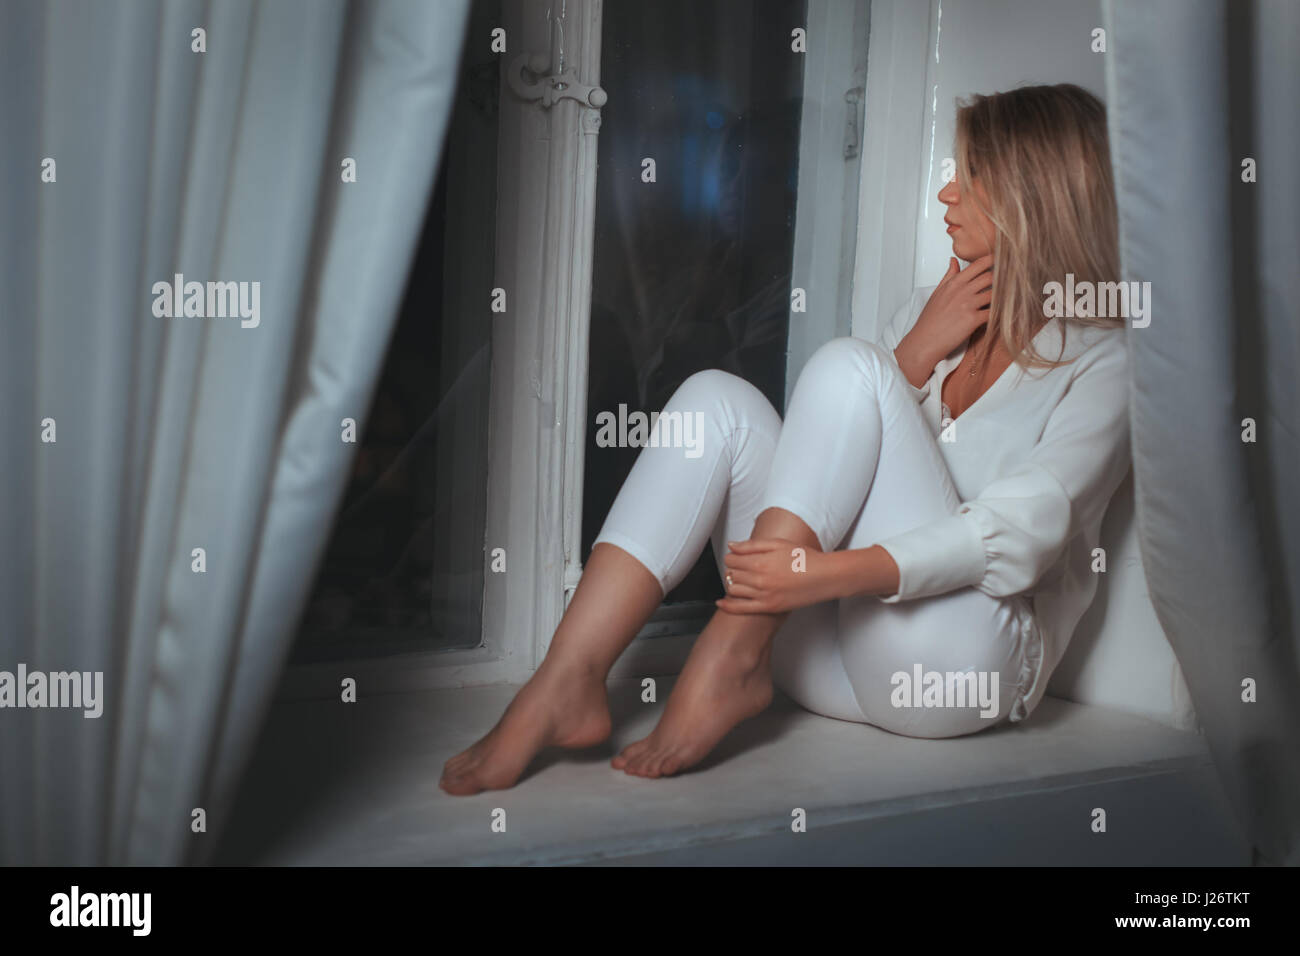 Girl dreams of sitting at the window, she was sad. - Stock Image